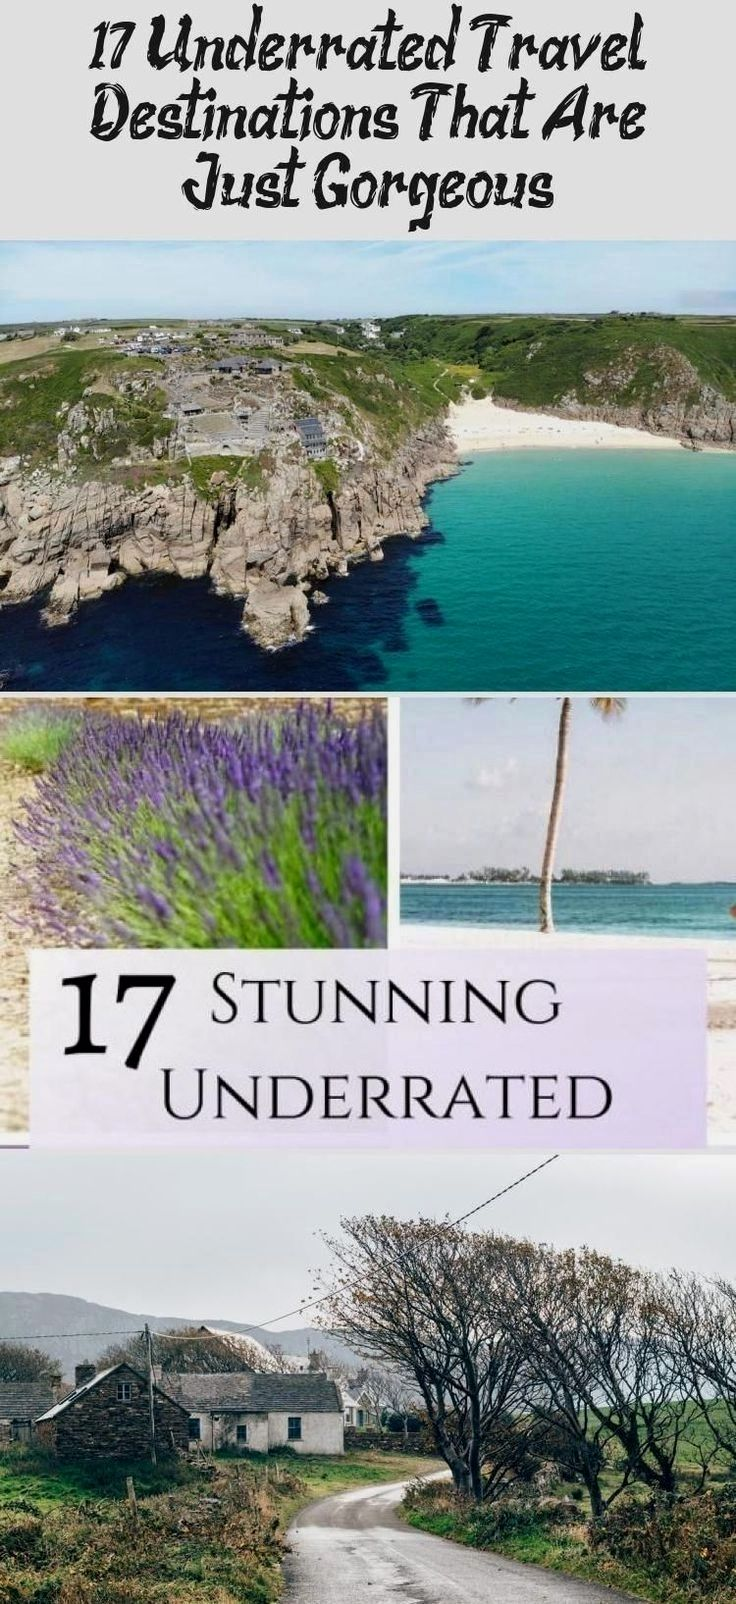 Are you looking for budget world travel destinations that are quite undiscovered and cheap?17 Underrated travel destinations that you and your budget will find unique and beautiful. #traveldestinations #budgettravel #TravelBlogger #TravelLogo #TravelPlane #TravelFrases #TravelTattoo #underratedtraveldestinations Are you looking for budget world travel destinations that are quite undiscovered and cheap?17 Underrated travel destinations that you and your budget will find unique and beaut..